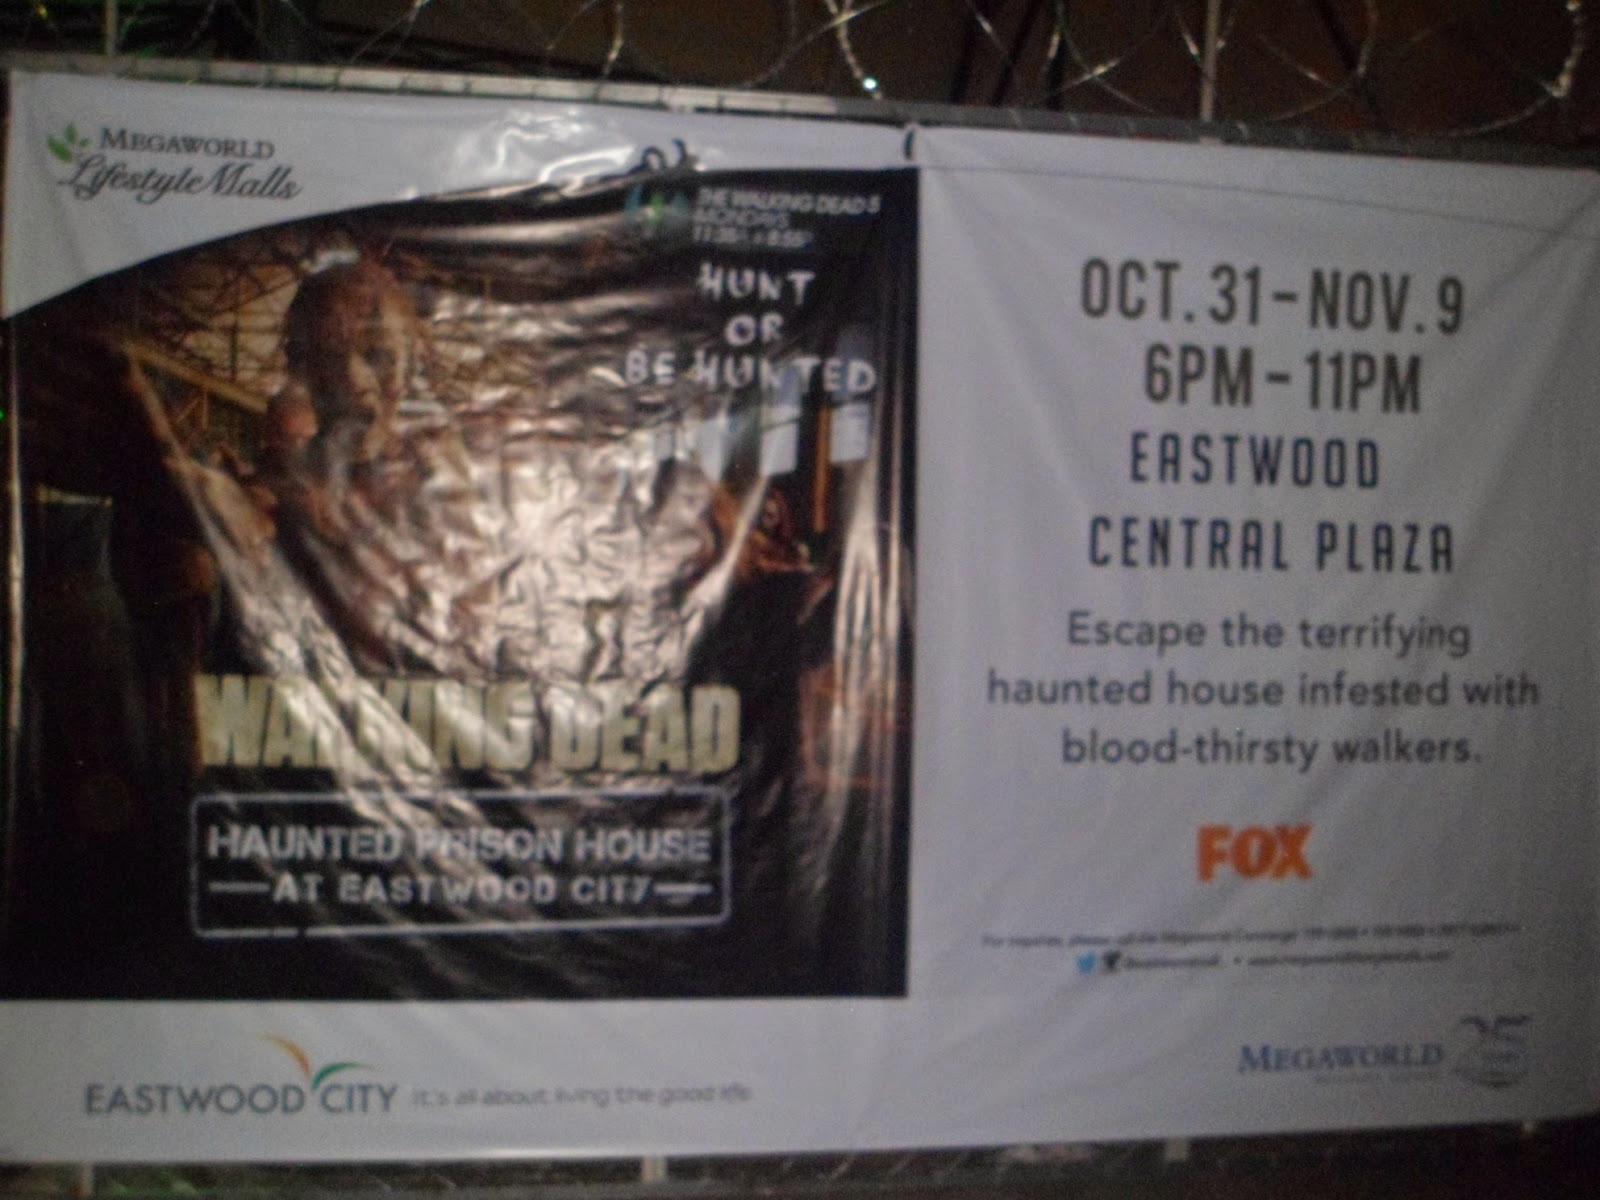 Eastwood City Brings The Walking Dead: Haunted Prison House